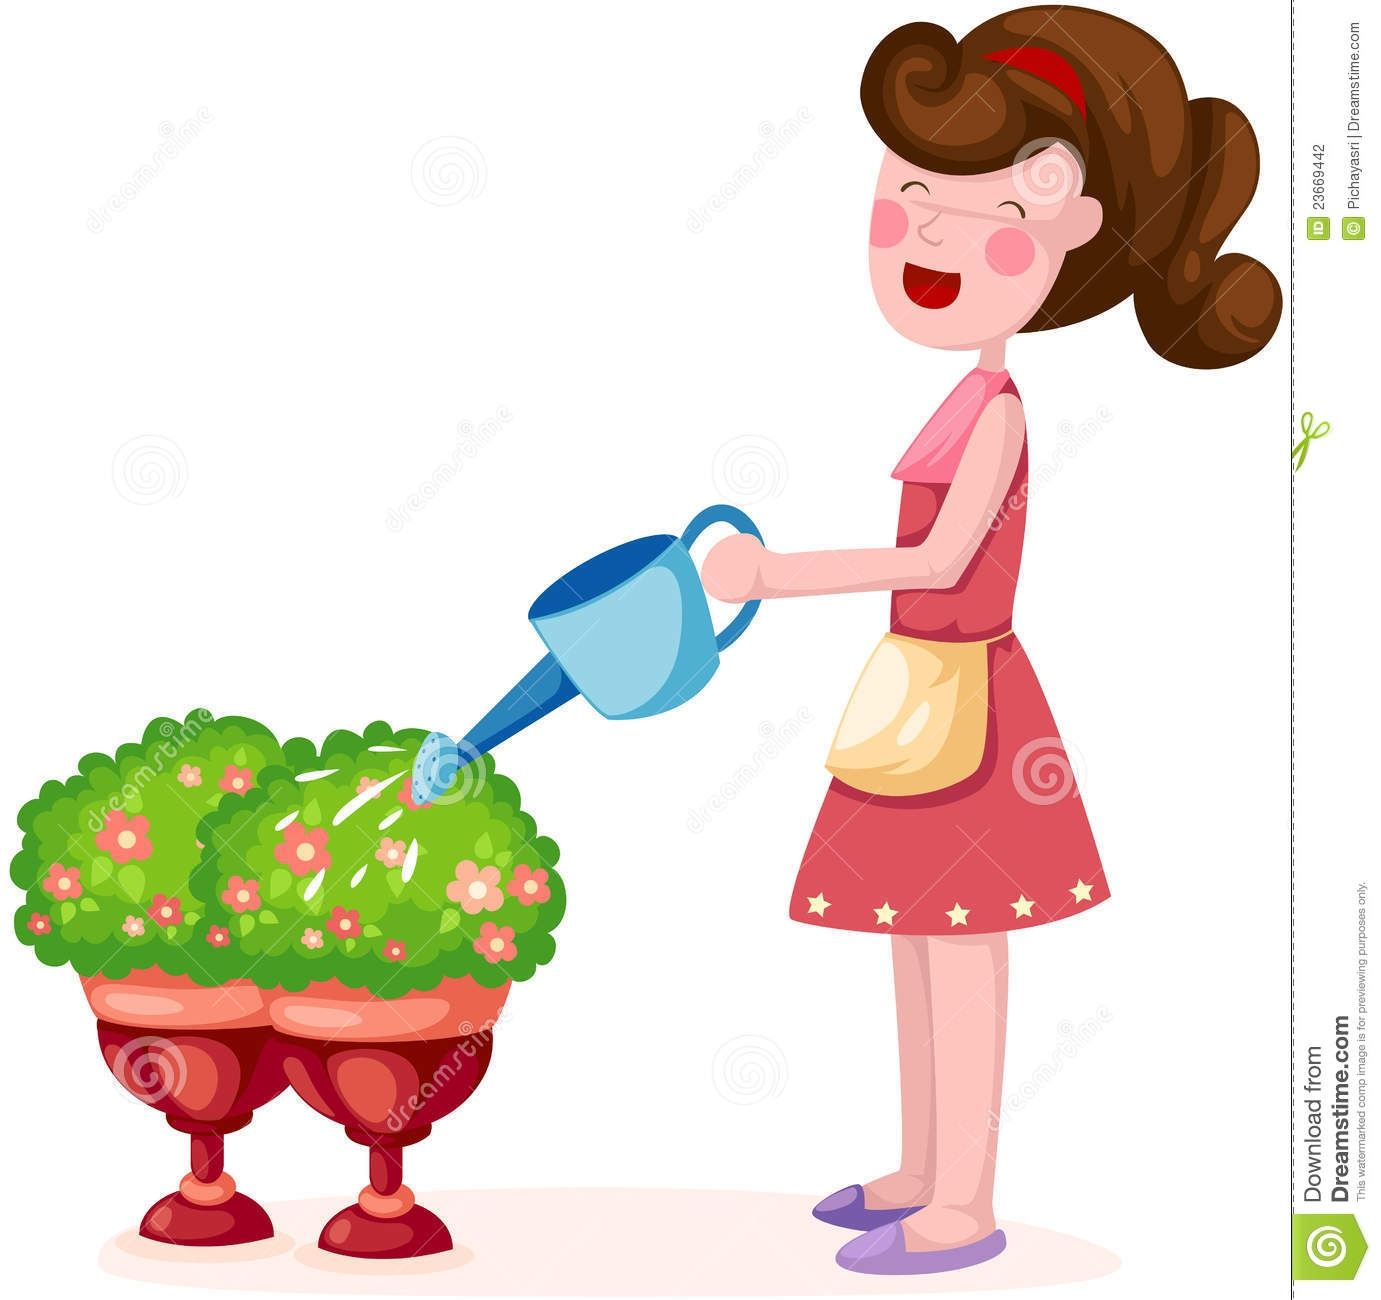 Girl watering plant clipart.